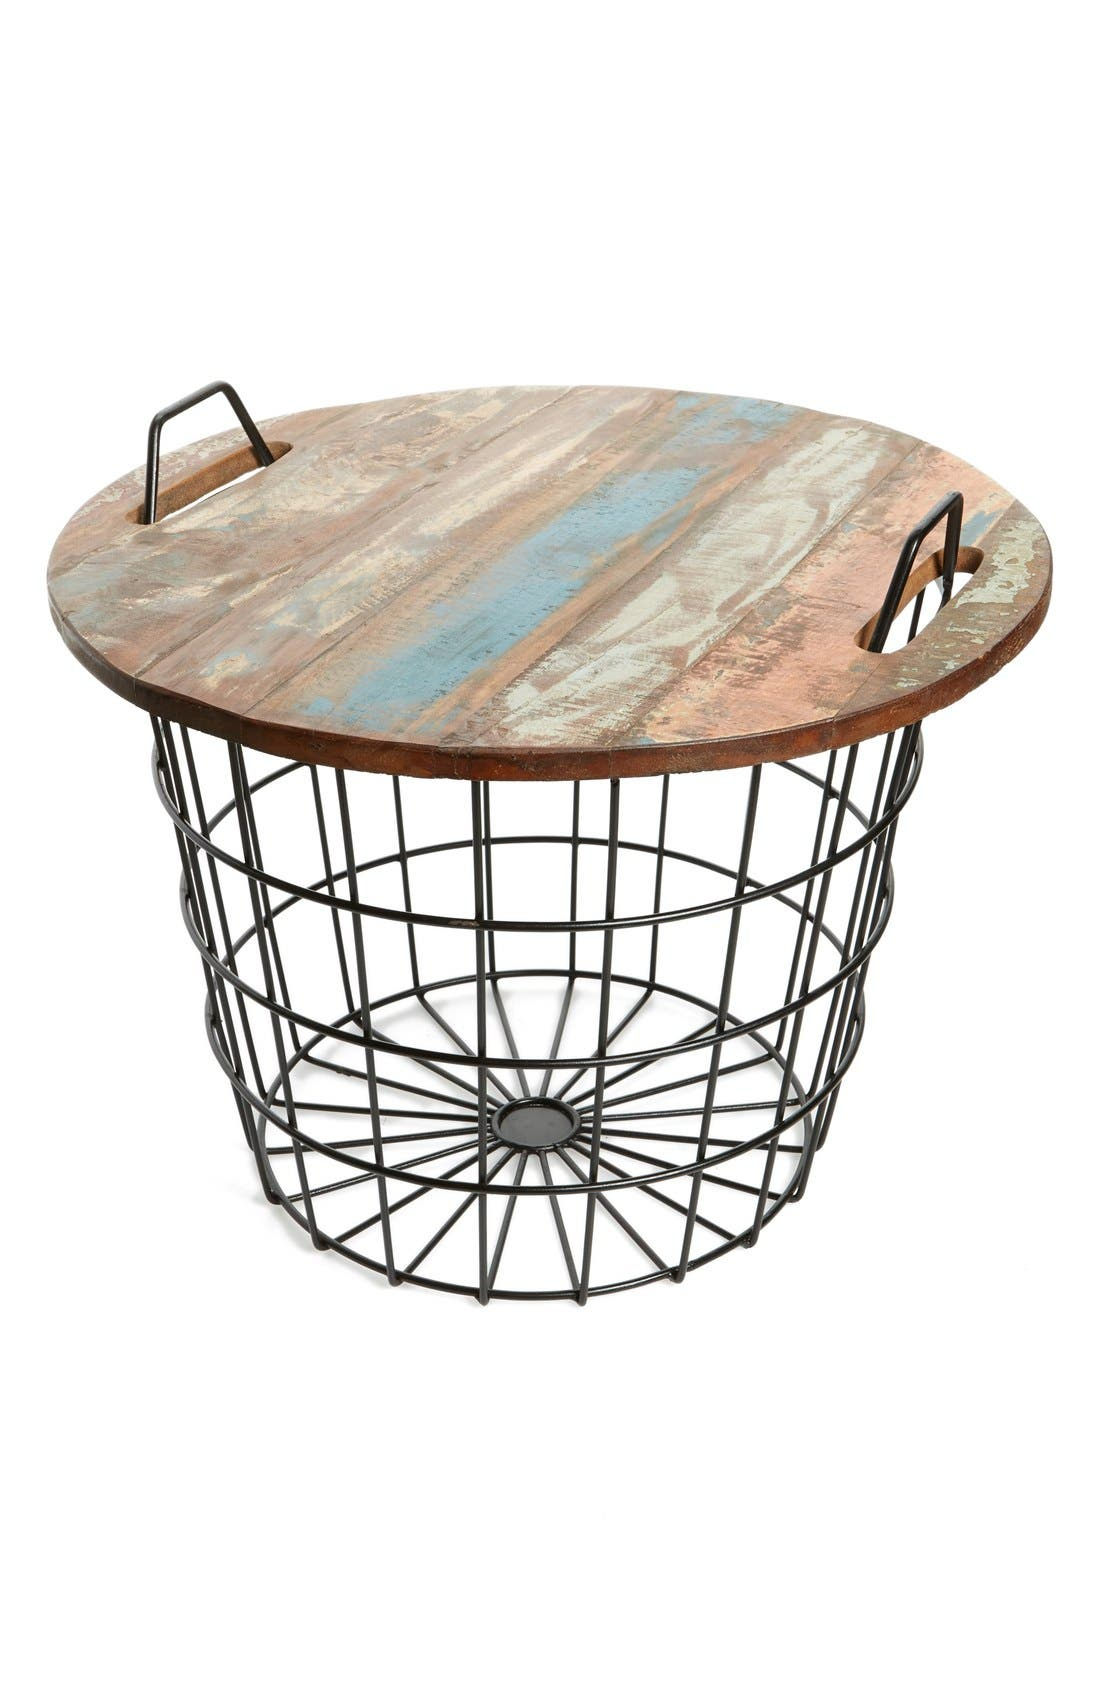 Main Image - Foreside Basket & Recycled Wood Storage Table